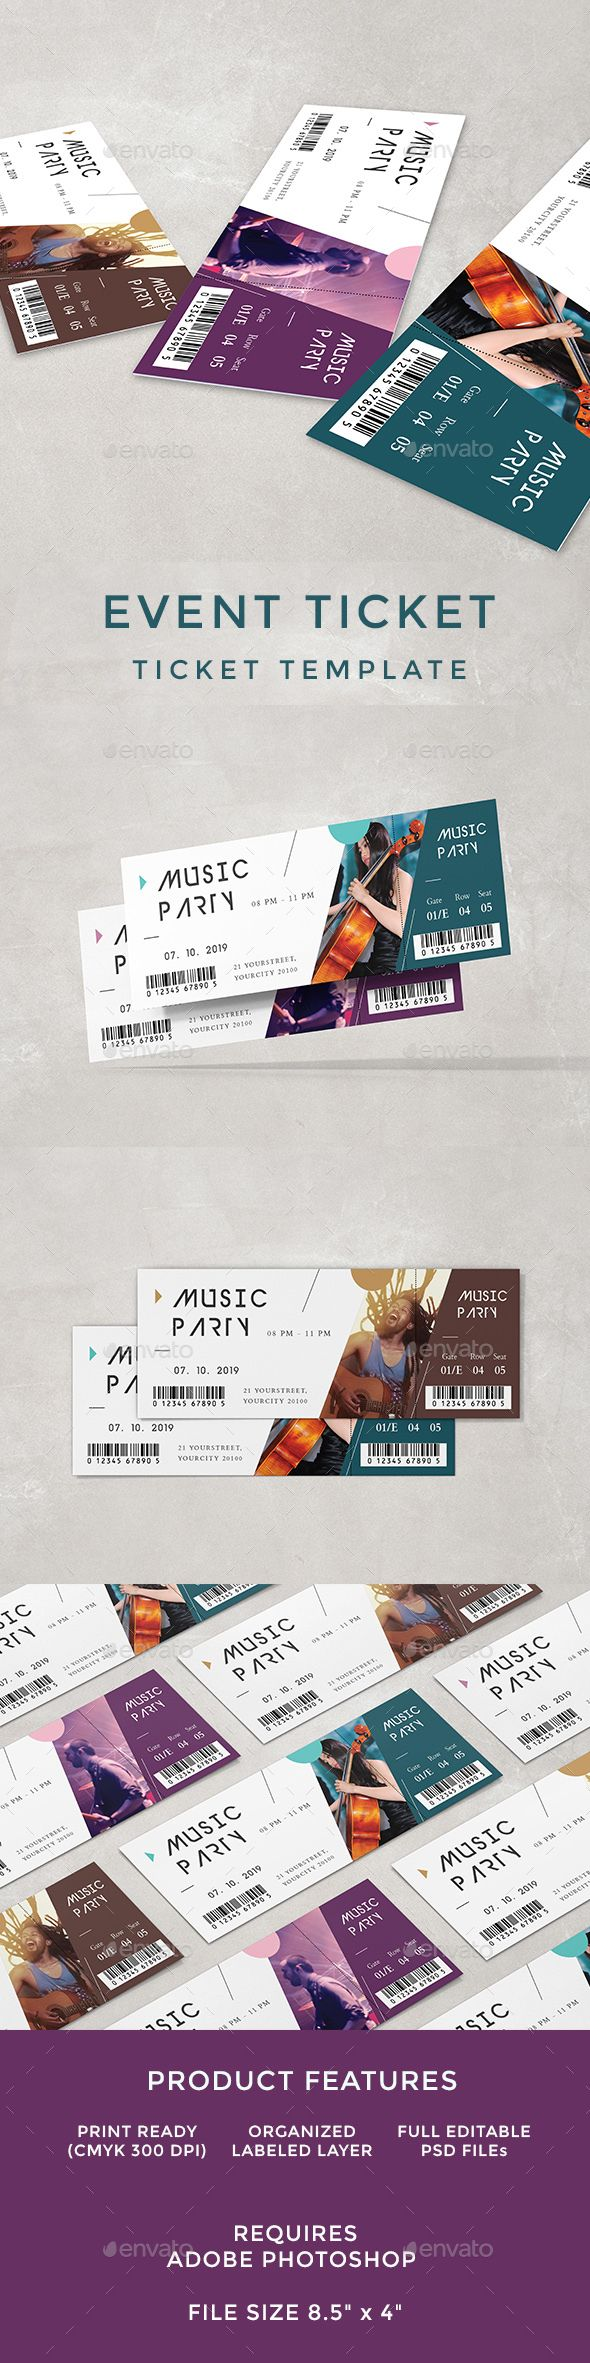 Concert Ticket Template Free Download Glamorous Event Ticket  Event Ticket Print Templates And Template